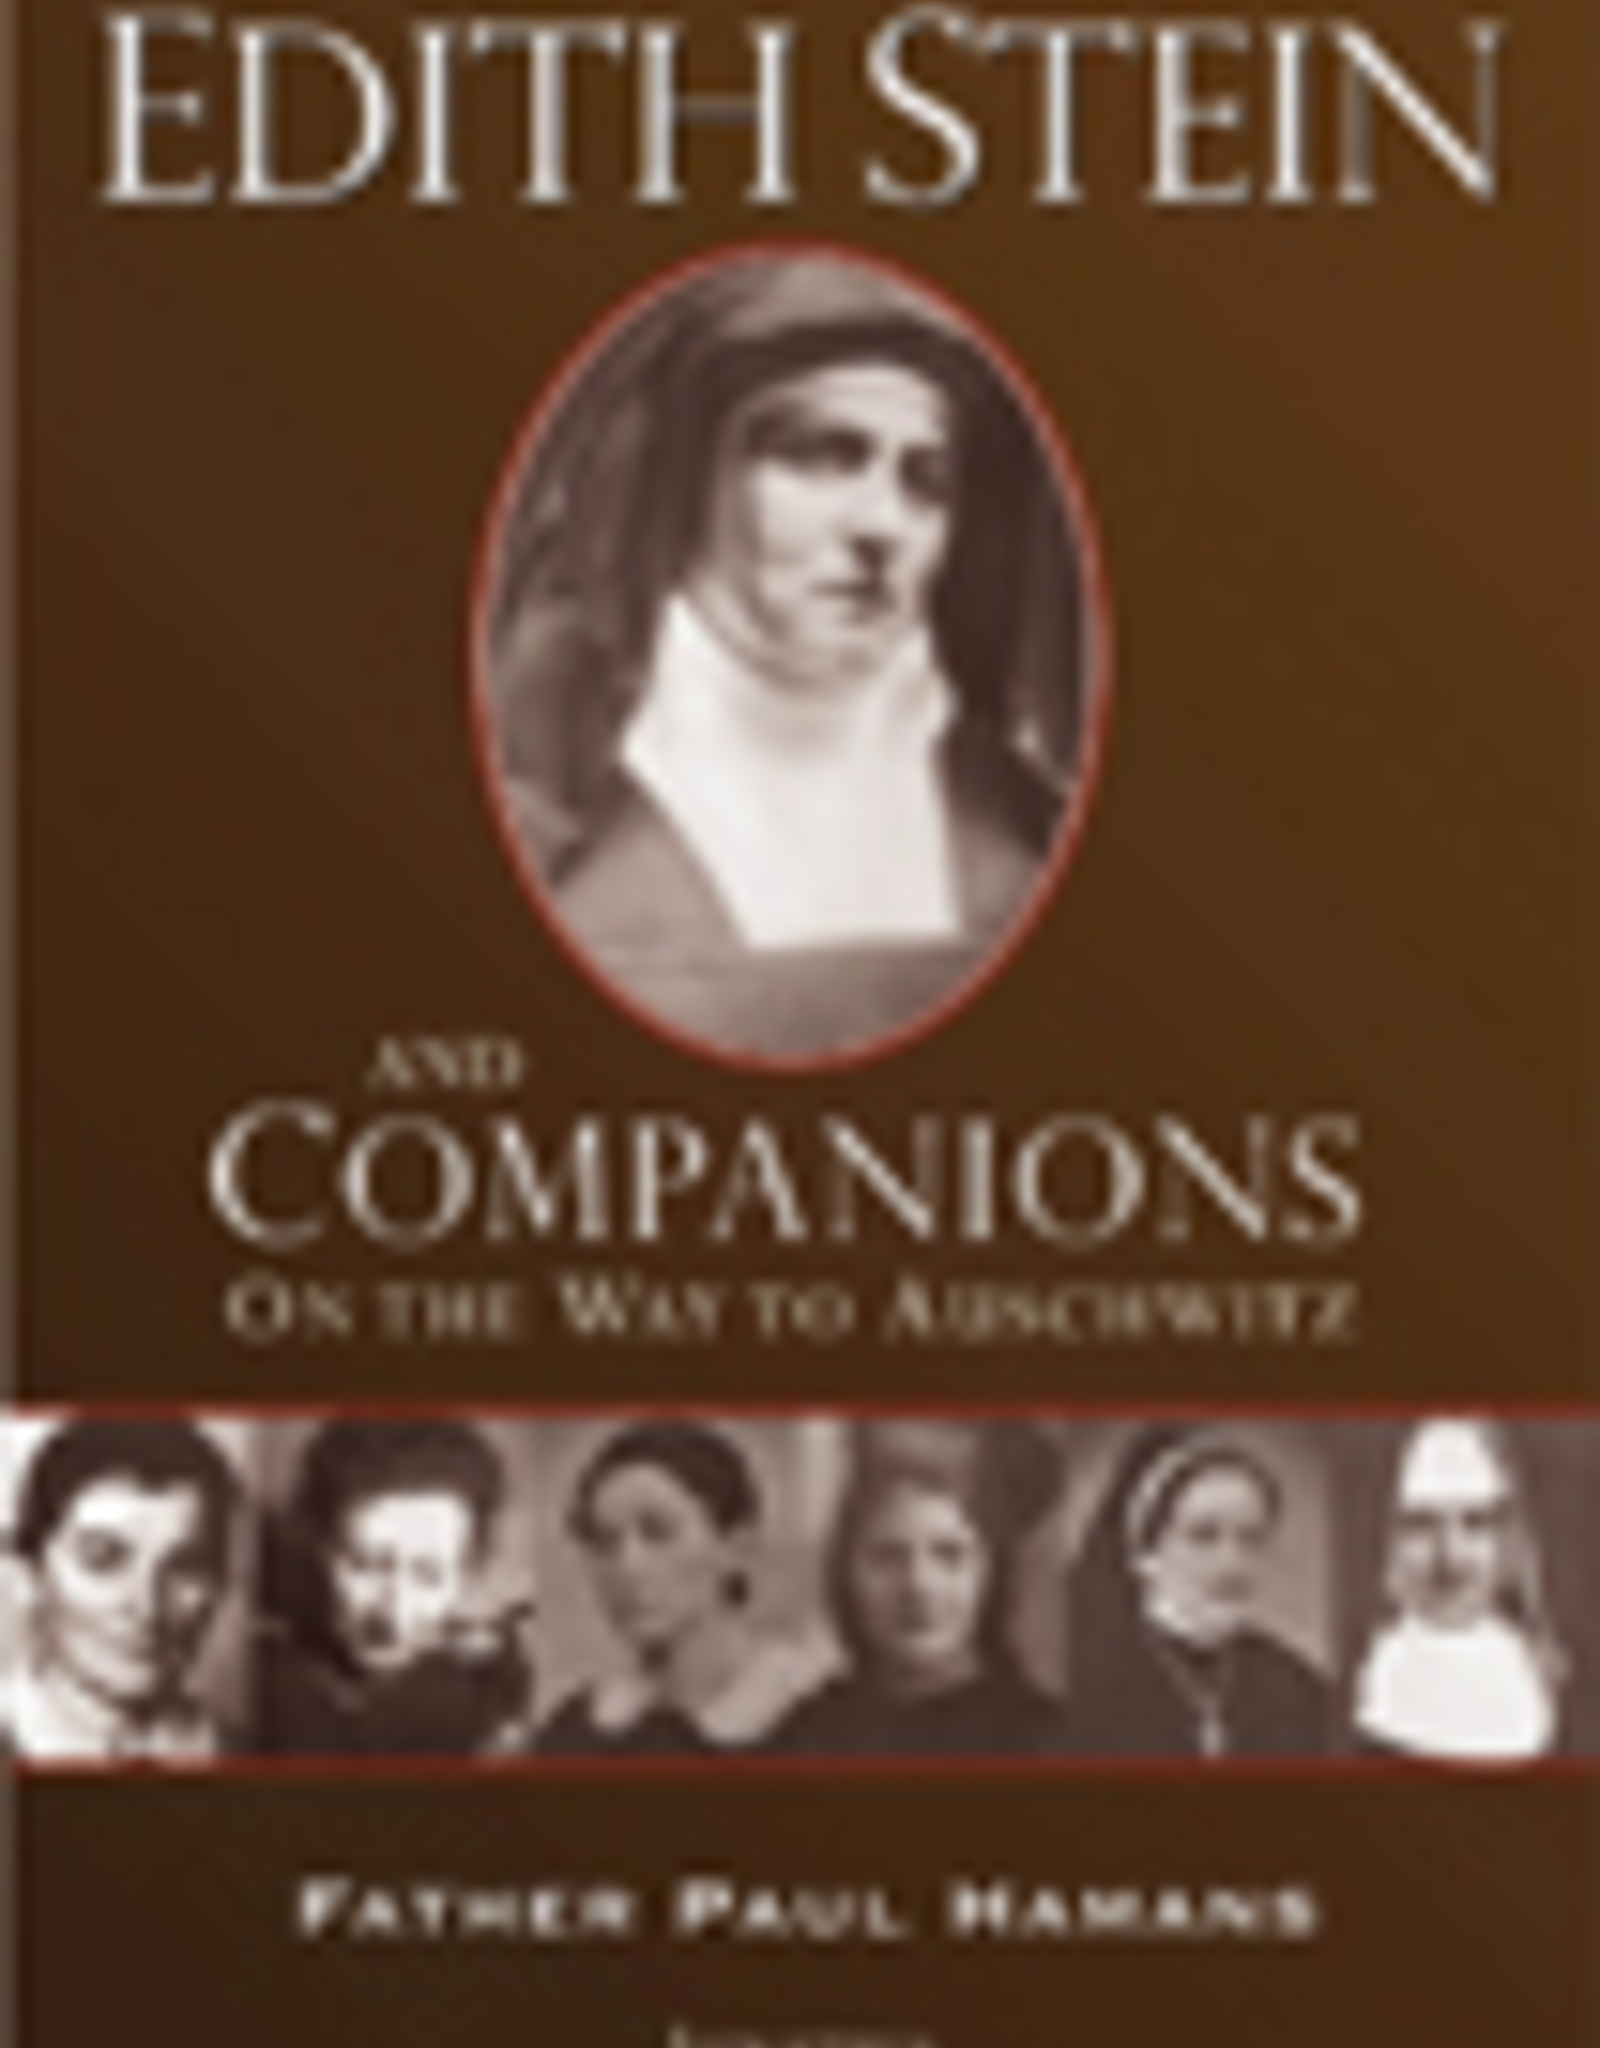 Ignatius Press Edith Stein and Companions, by Paul Hamans (paperback)